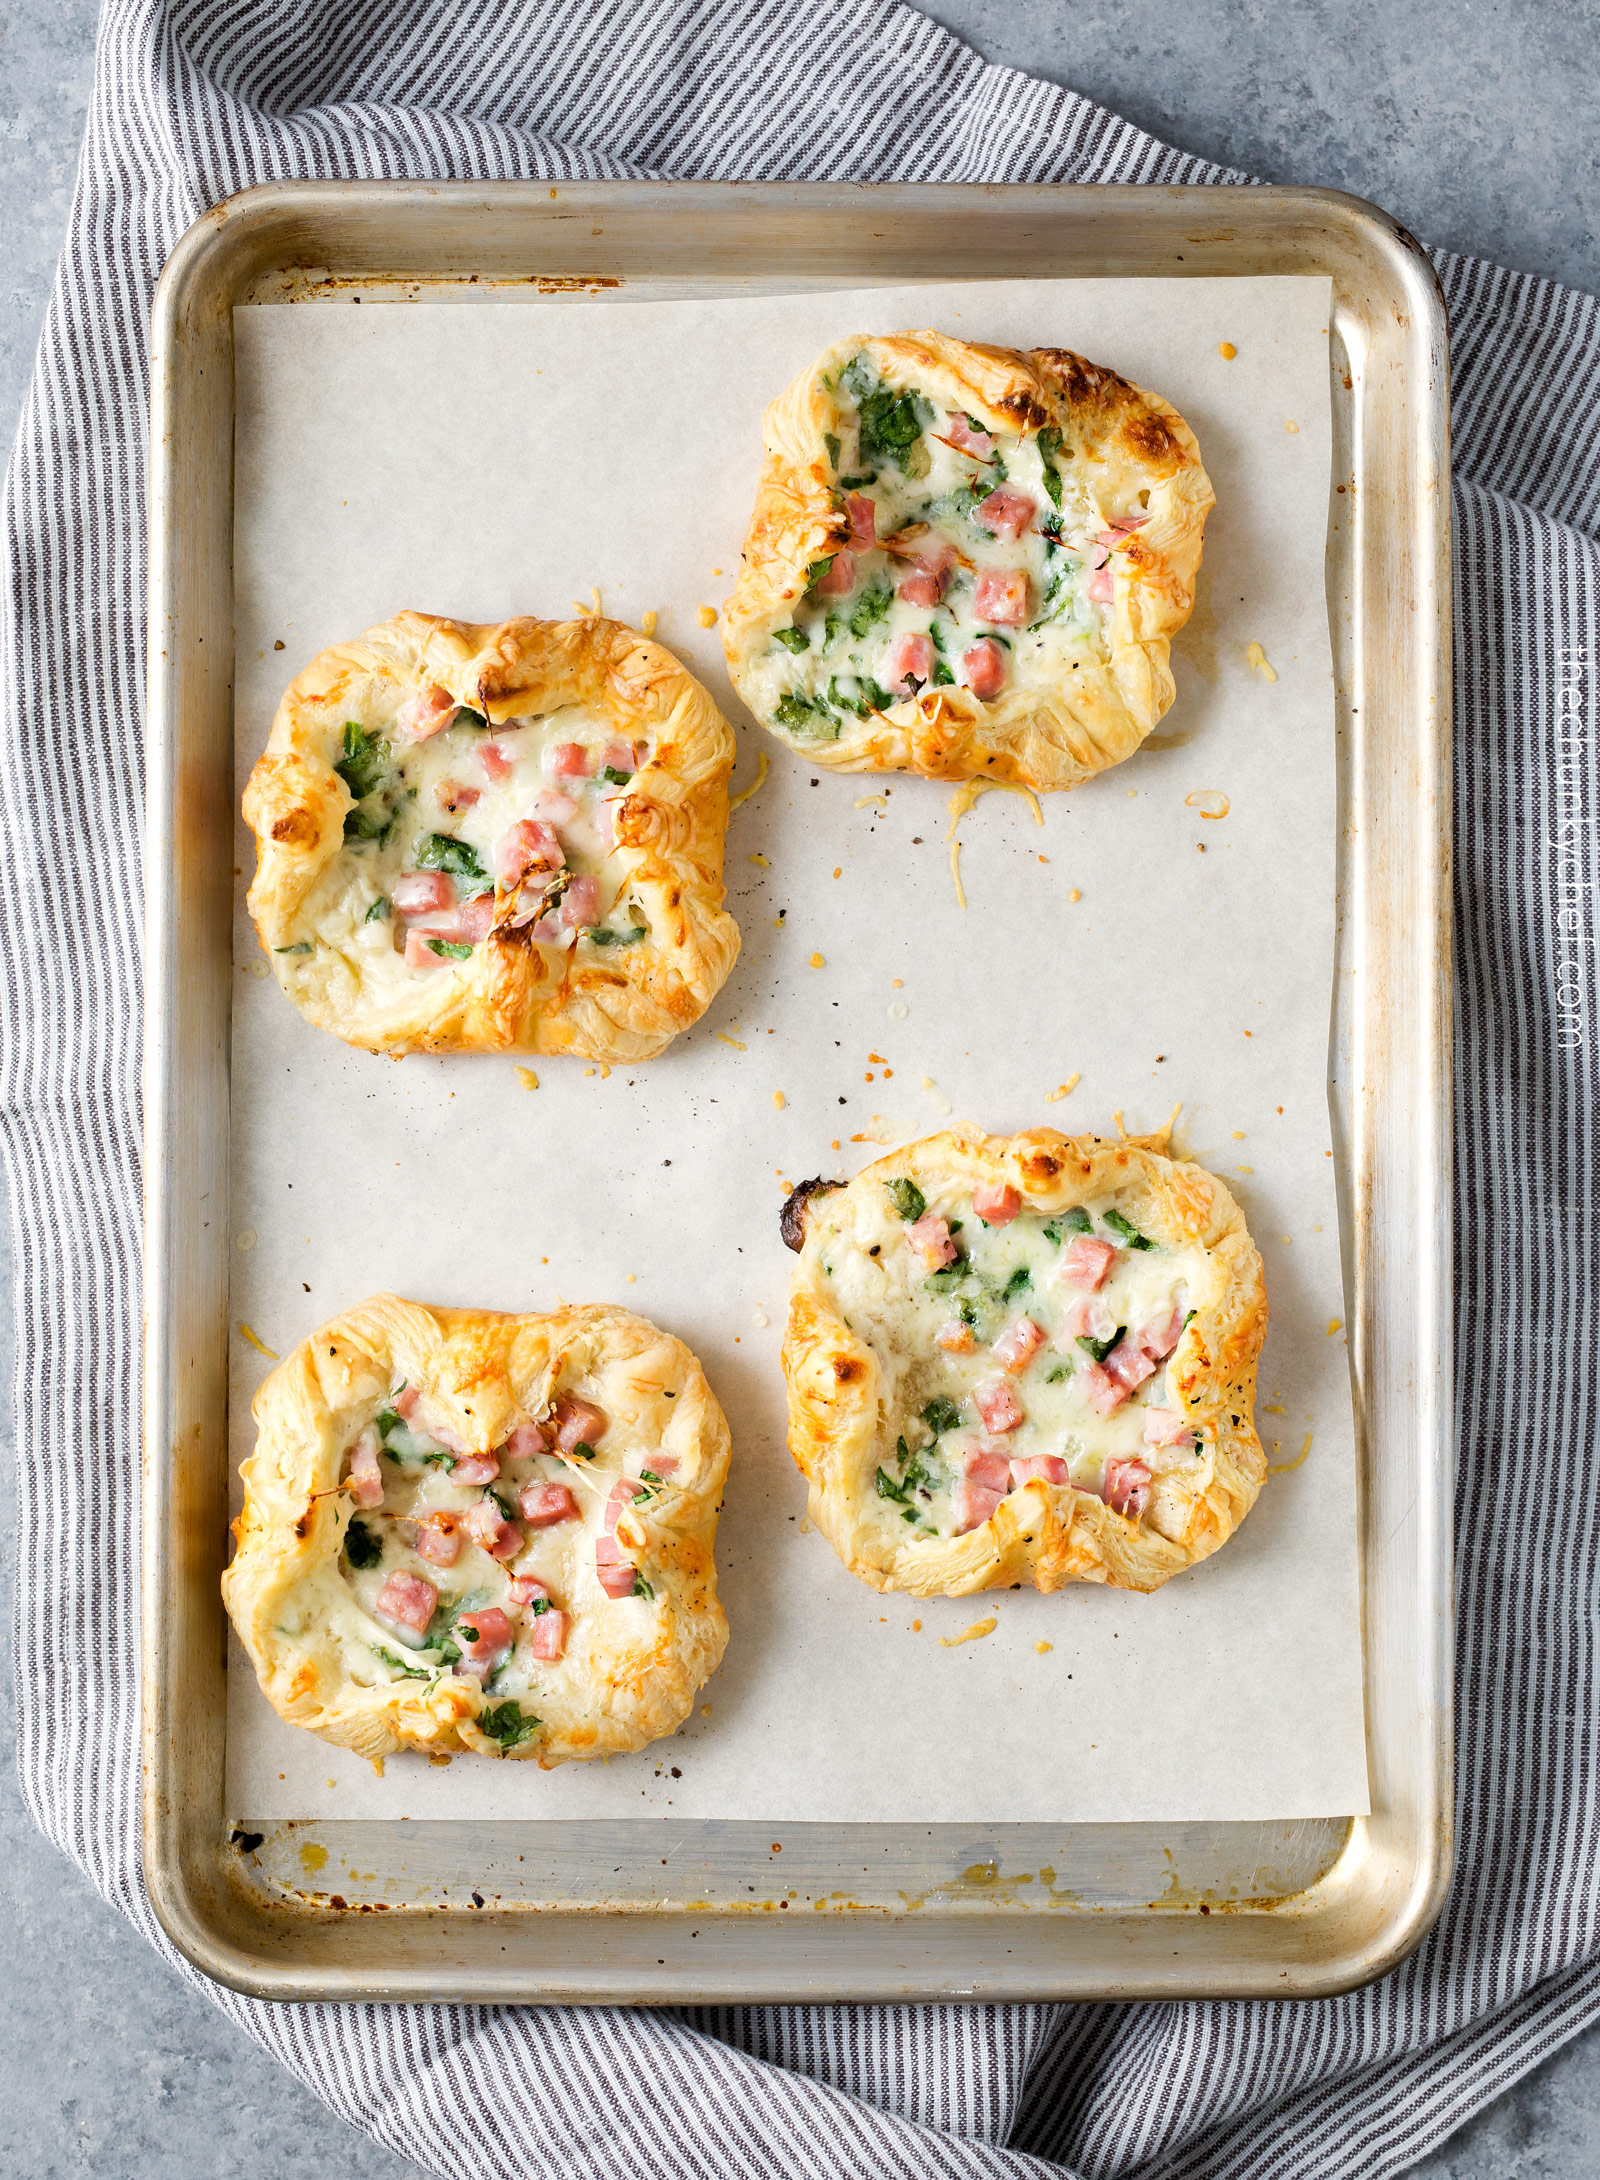 Ham and Cheese Spinach Puffs   Ready in just over 30 minutes, these spinach puffs are made with flaky puff pastry, wrapped around a creamy mixture of ham, gruyere cheese and fresh spinach. Perfect for using leftover ham!   http://thechunkychef.com